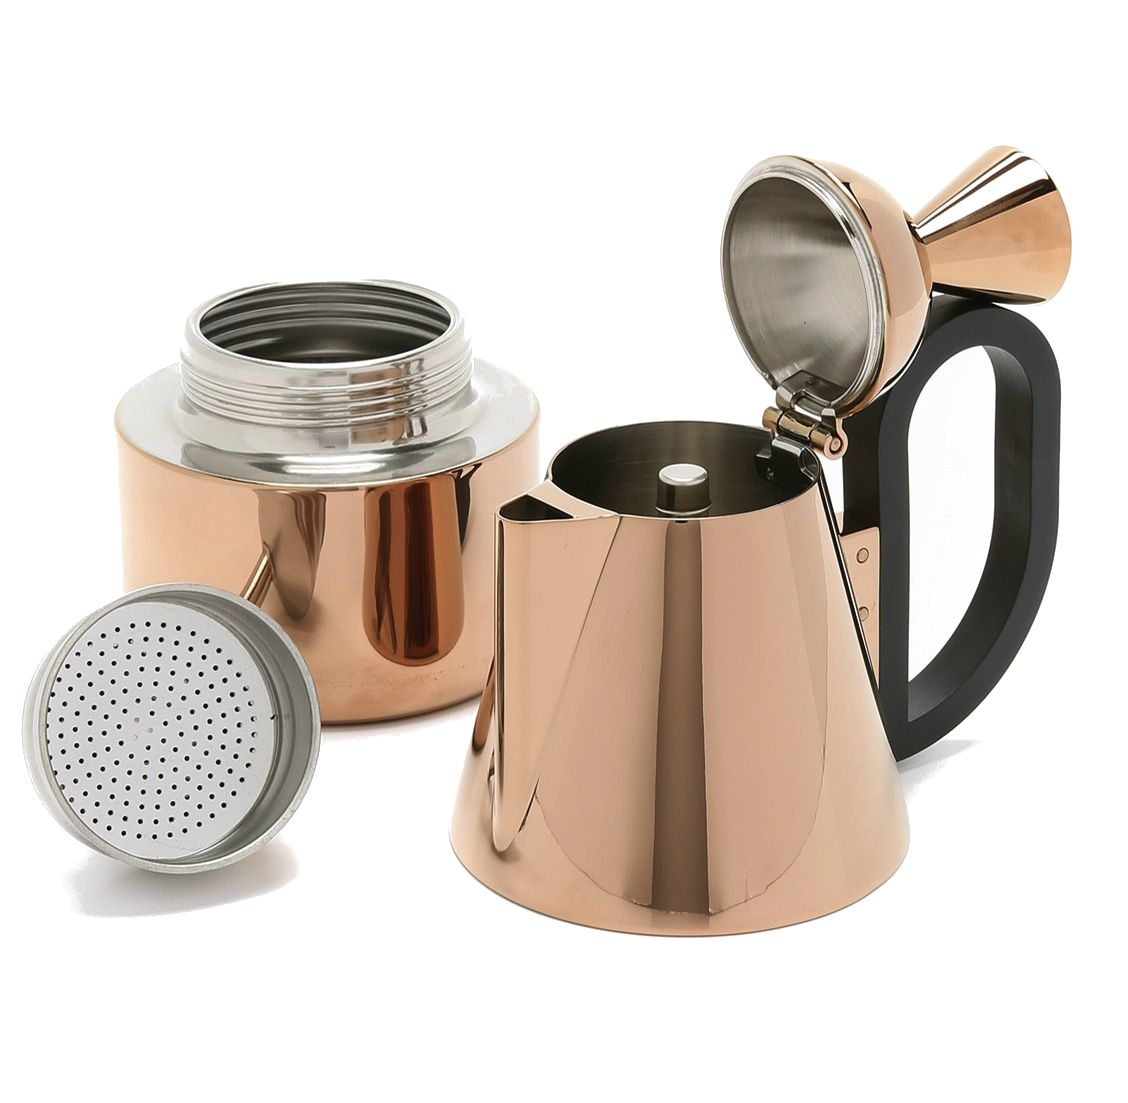 Stovetop Coffee Maker Gift : Tom Dixon brew stove top coffee maker. http://rstyle.me/n/bdis4ibbi4f Wishlist Pinterest ...